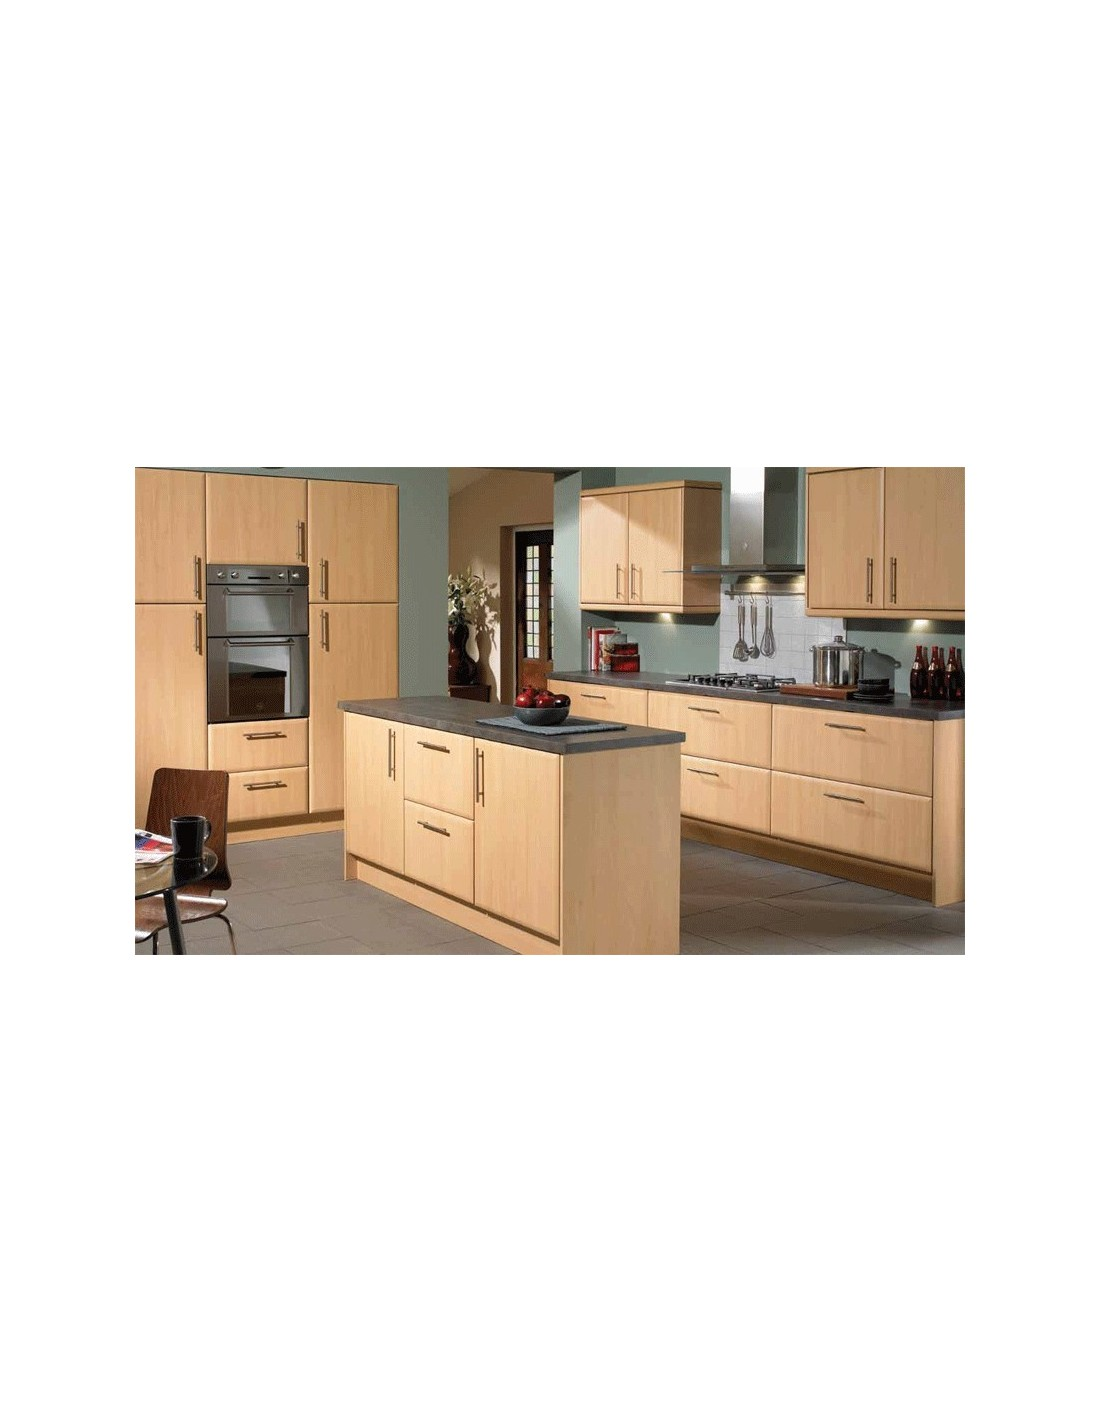 Beech Kitchen Cabinet Doors Image Collections - Doors Design Ideas